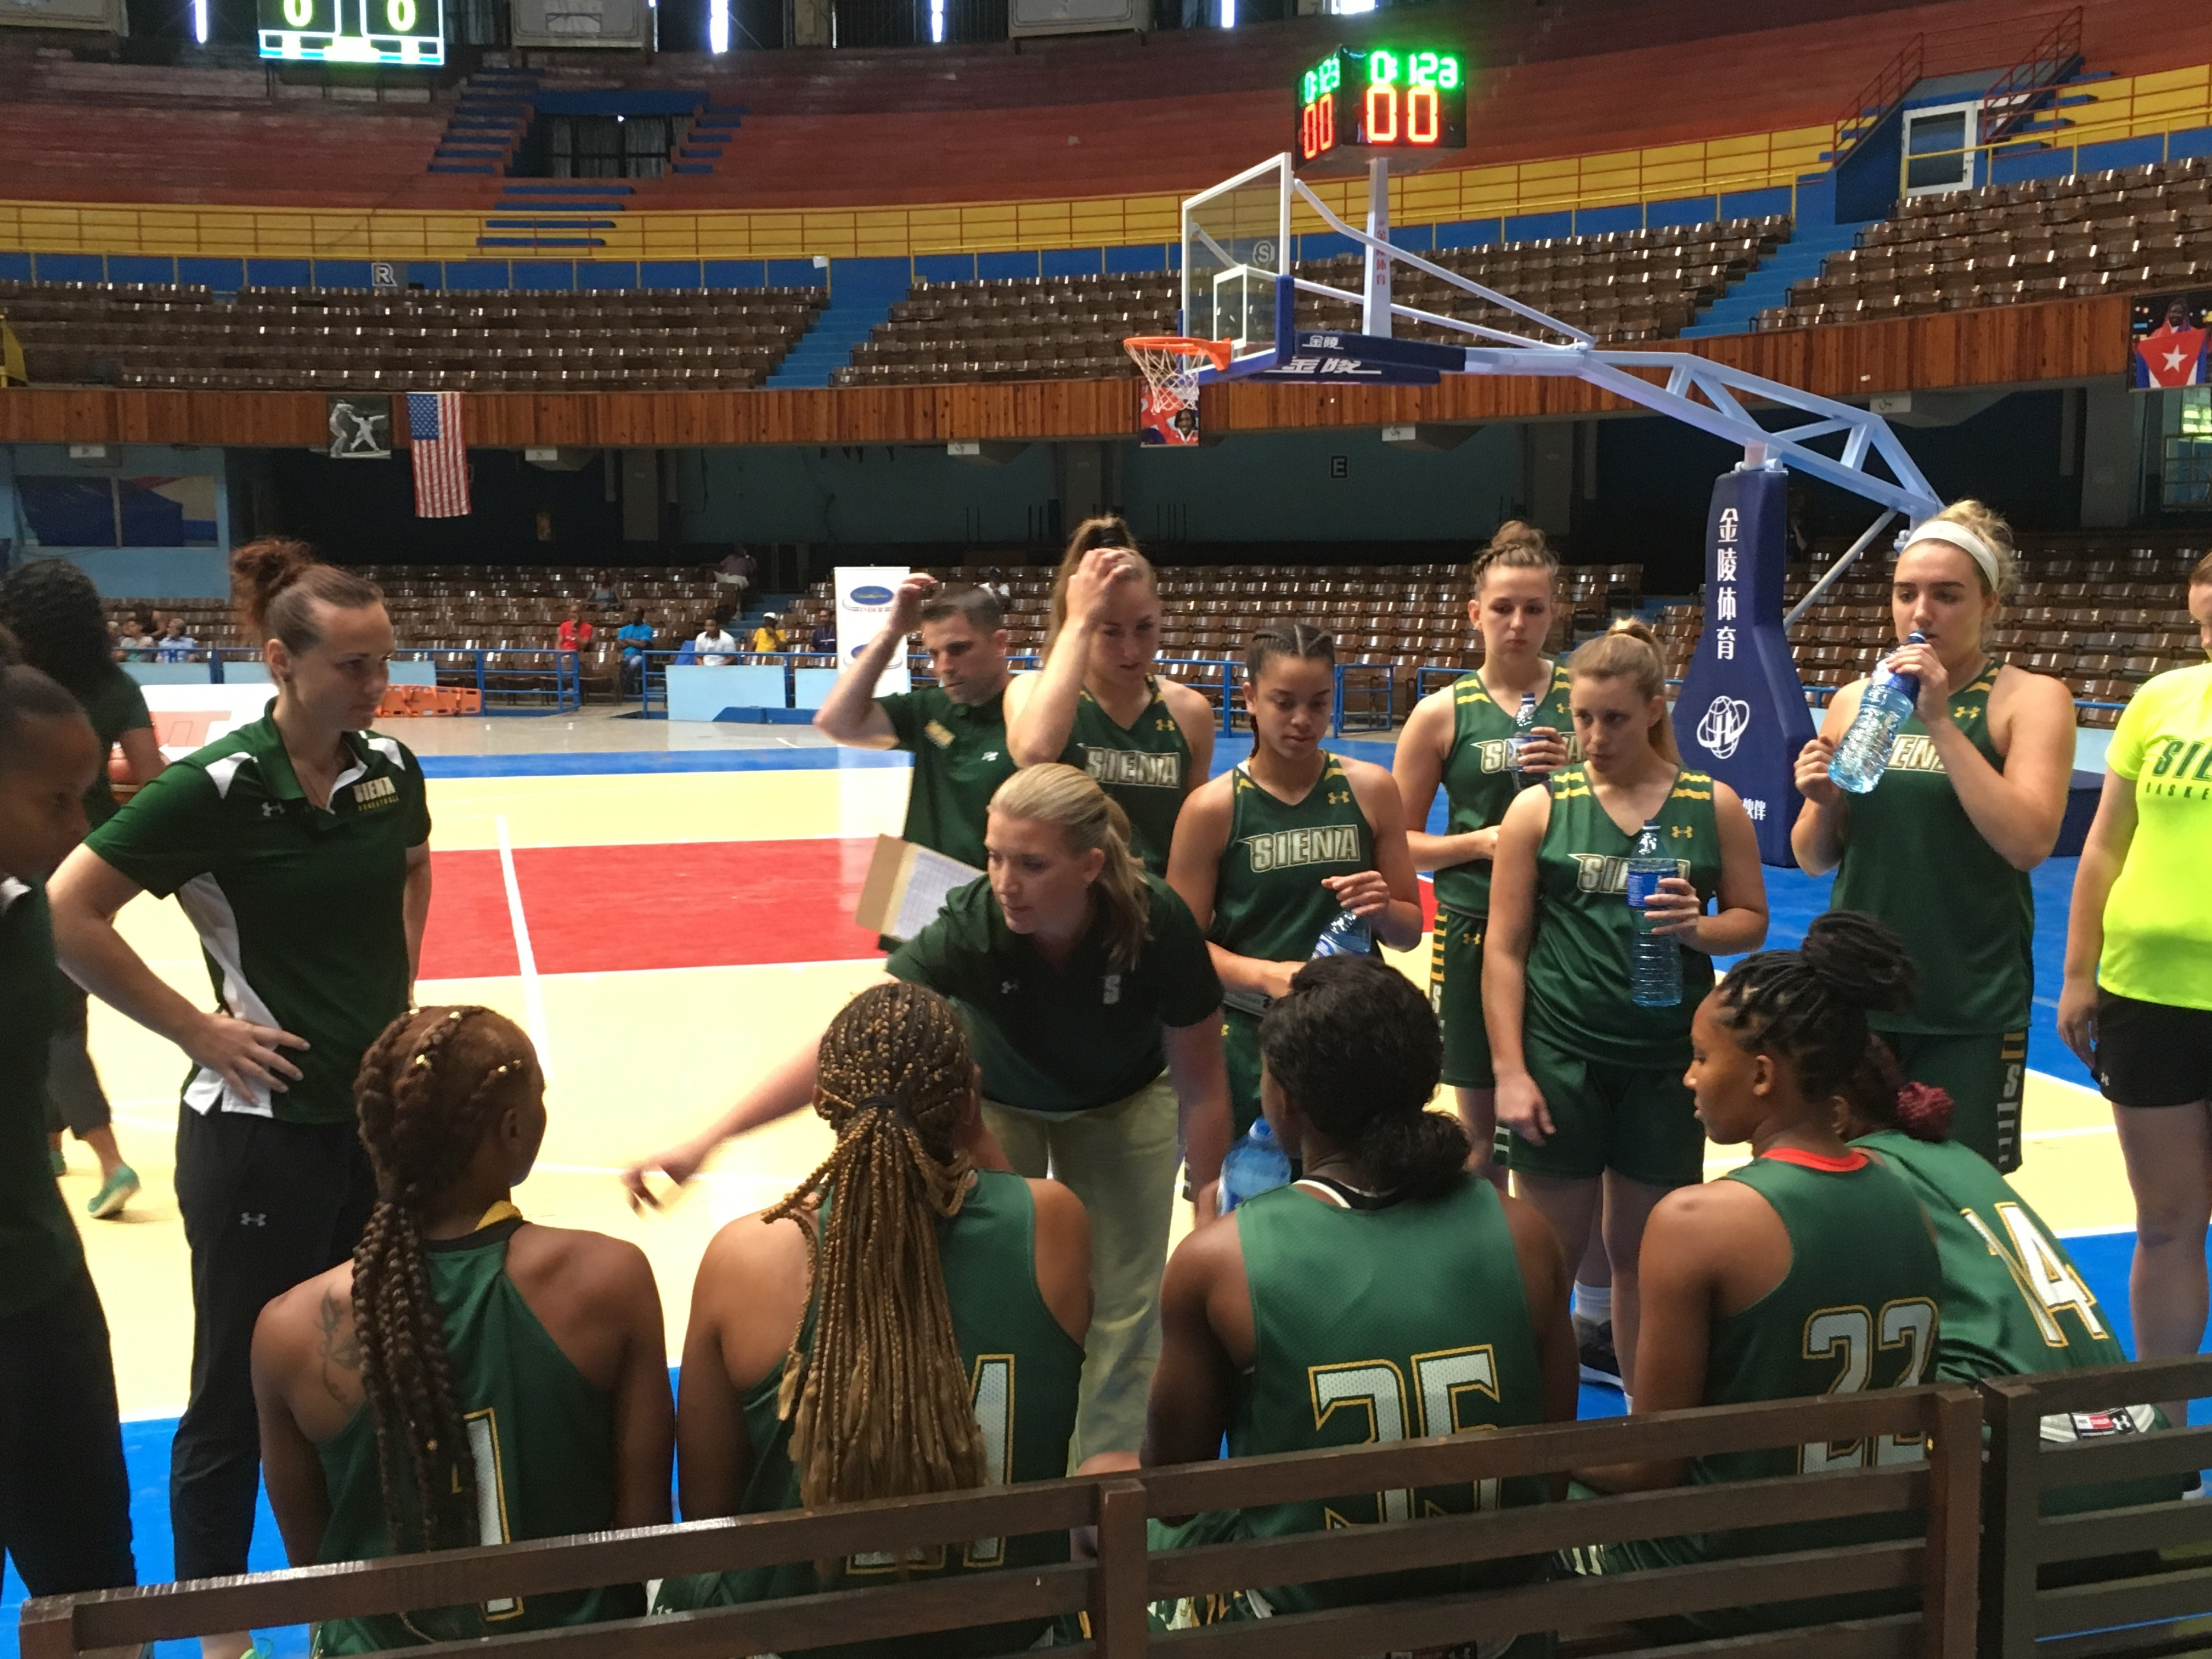 This photo taken Aug. 15, 2017, shows Siena women's coach Ali Jaques talking with her team before a game against the Cuban national team at Coliseo de la Ciudad Deportiva in Havana, Cuba. Siena played three games against the Cuban national team, plus host